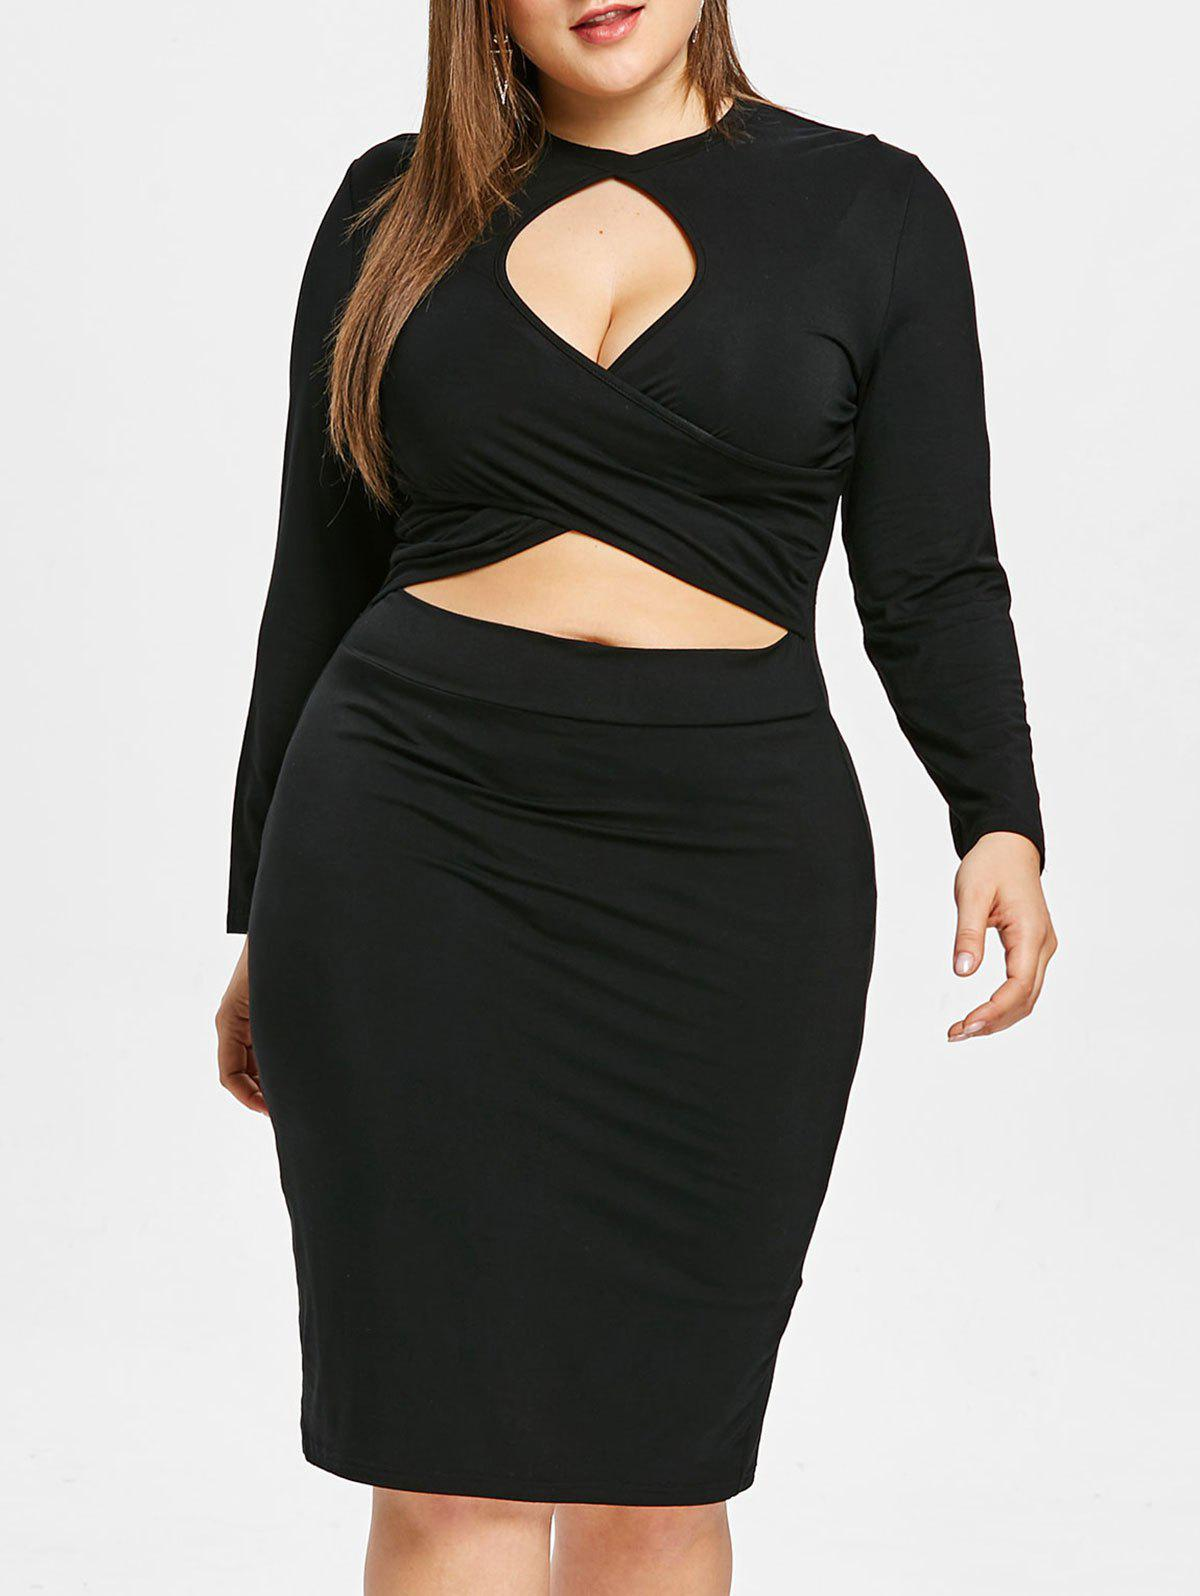 Plus Size Long Sleeve Keyhole Collar Crisscross Dress - BLACK 4X